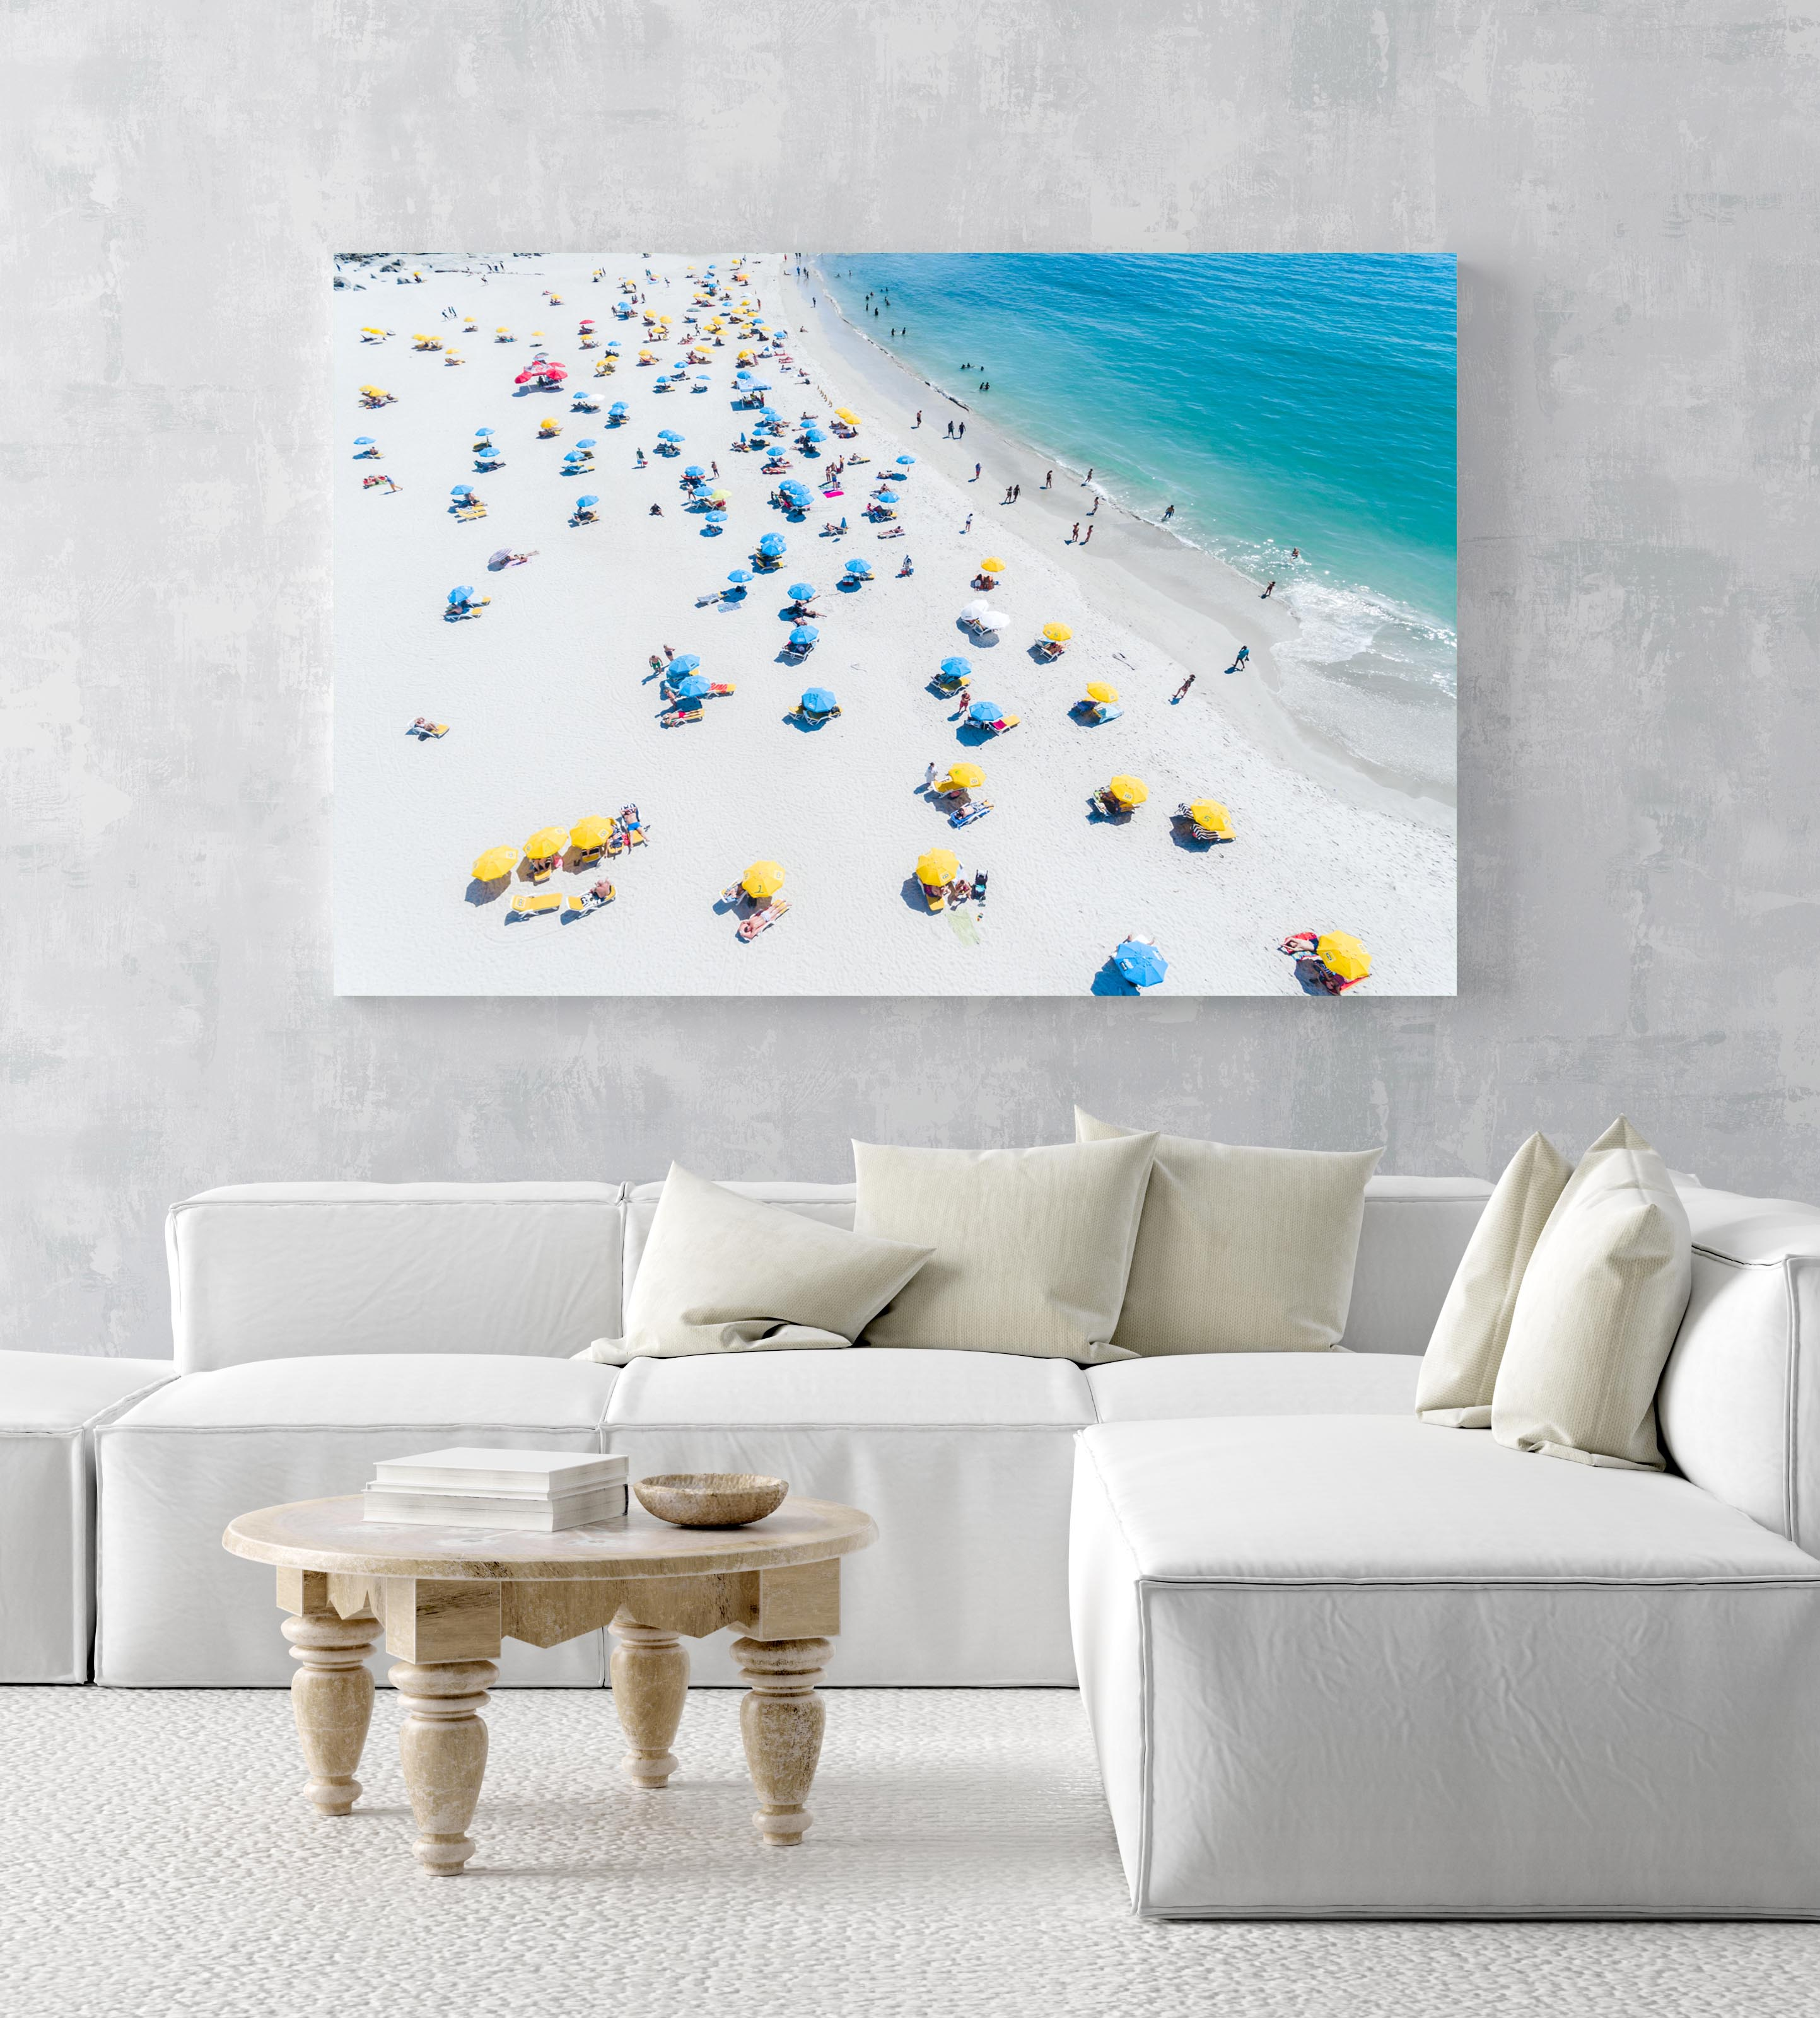 Aerial busy umbrellas and people on white sandy beach in an acrylic/perspex frame